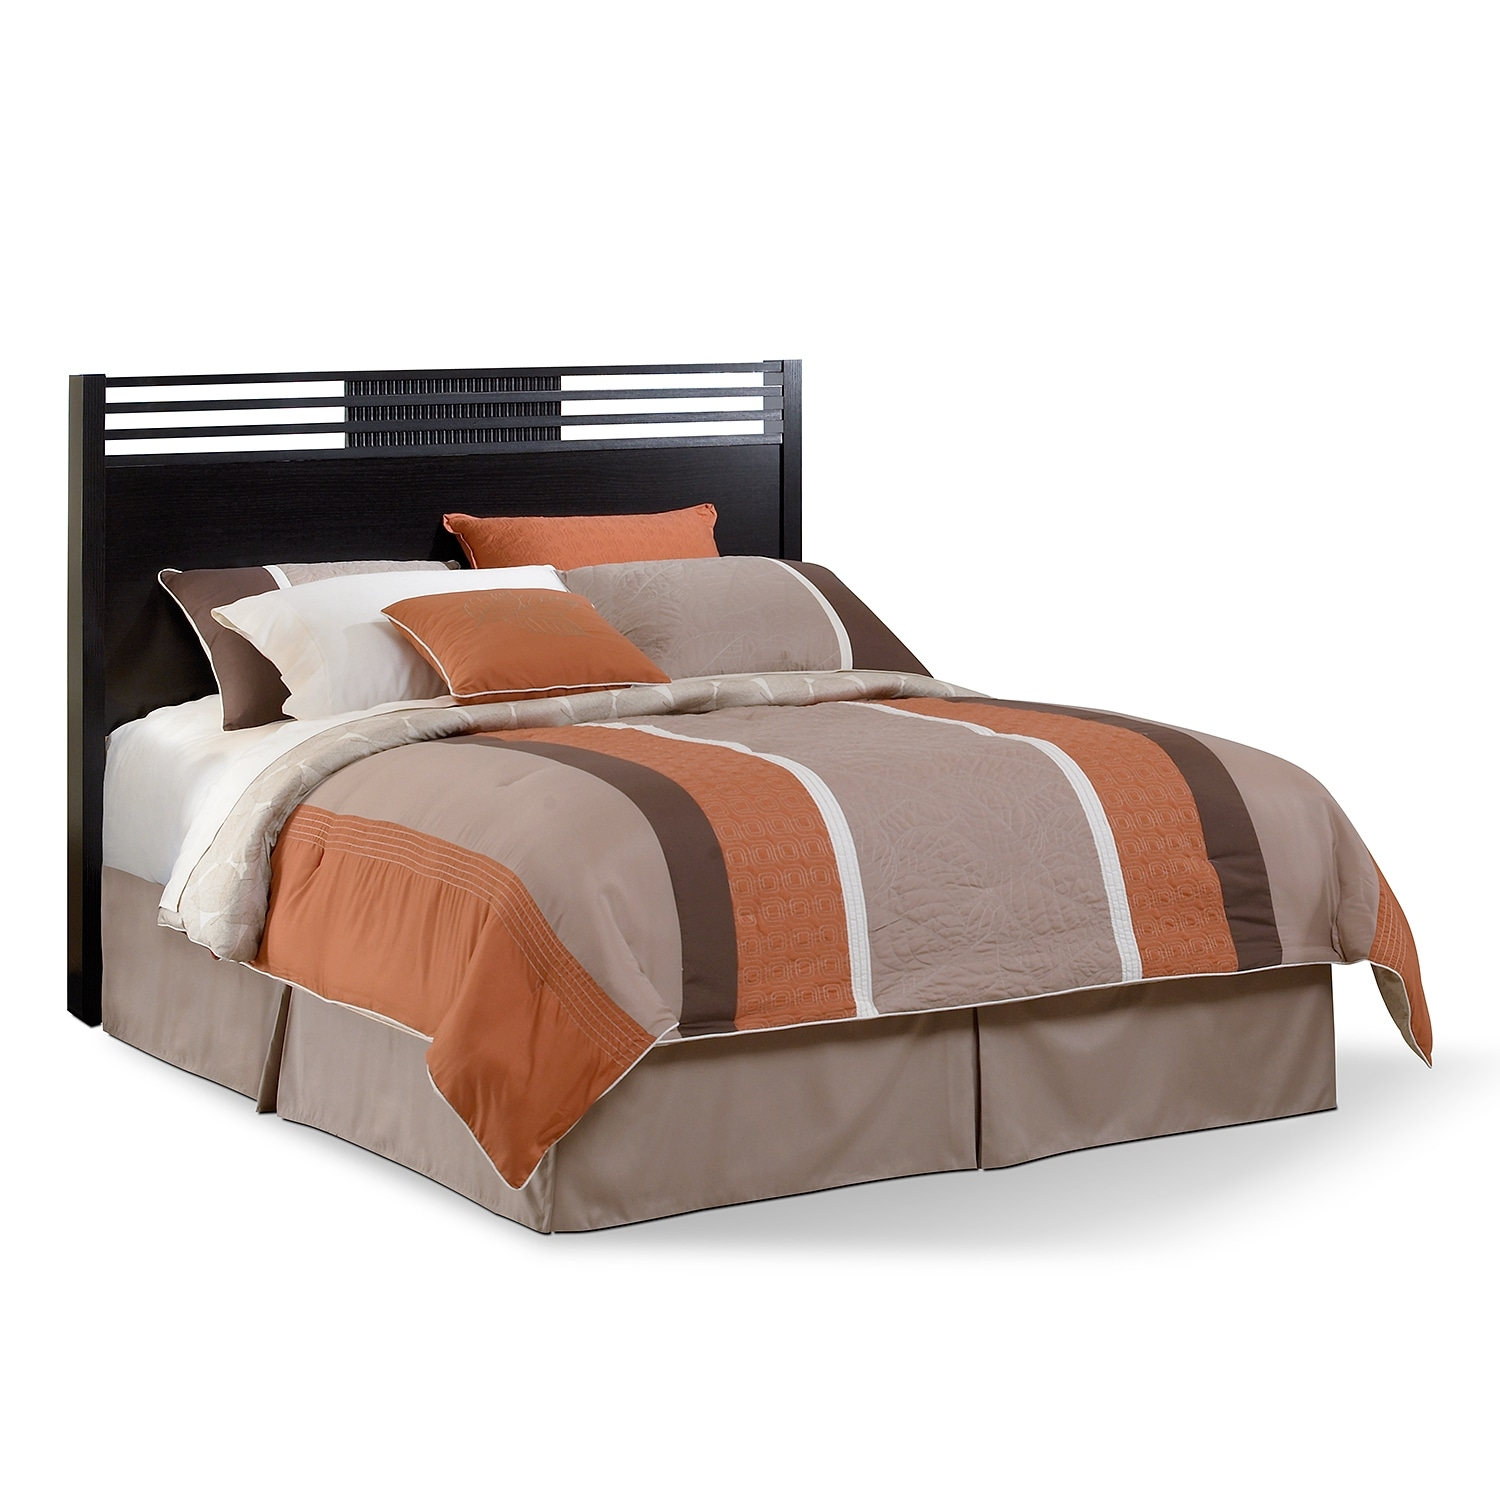 Bally Espresso King Headboard